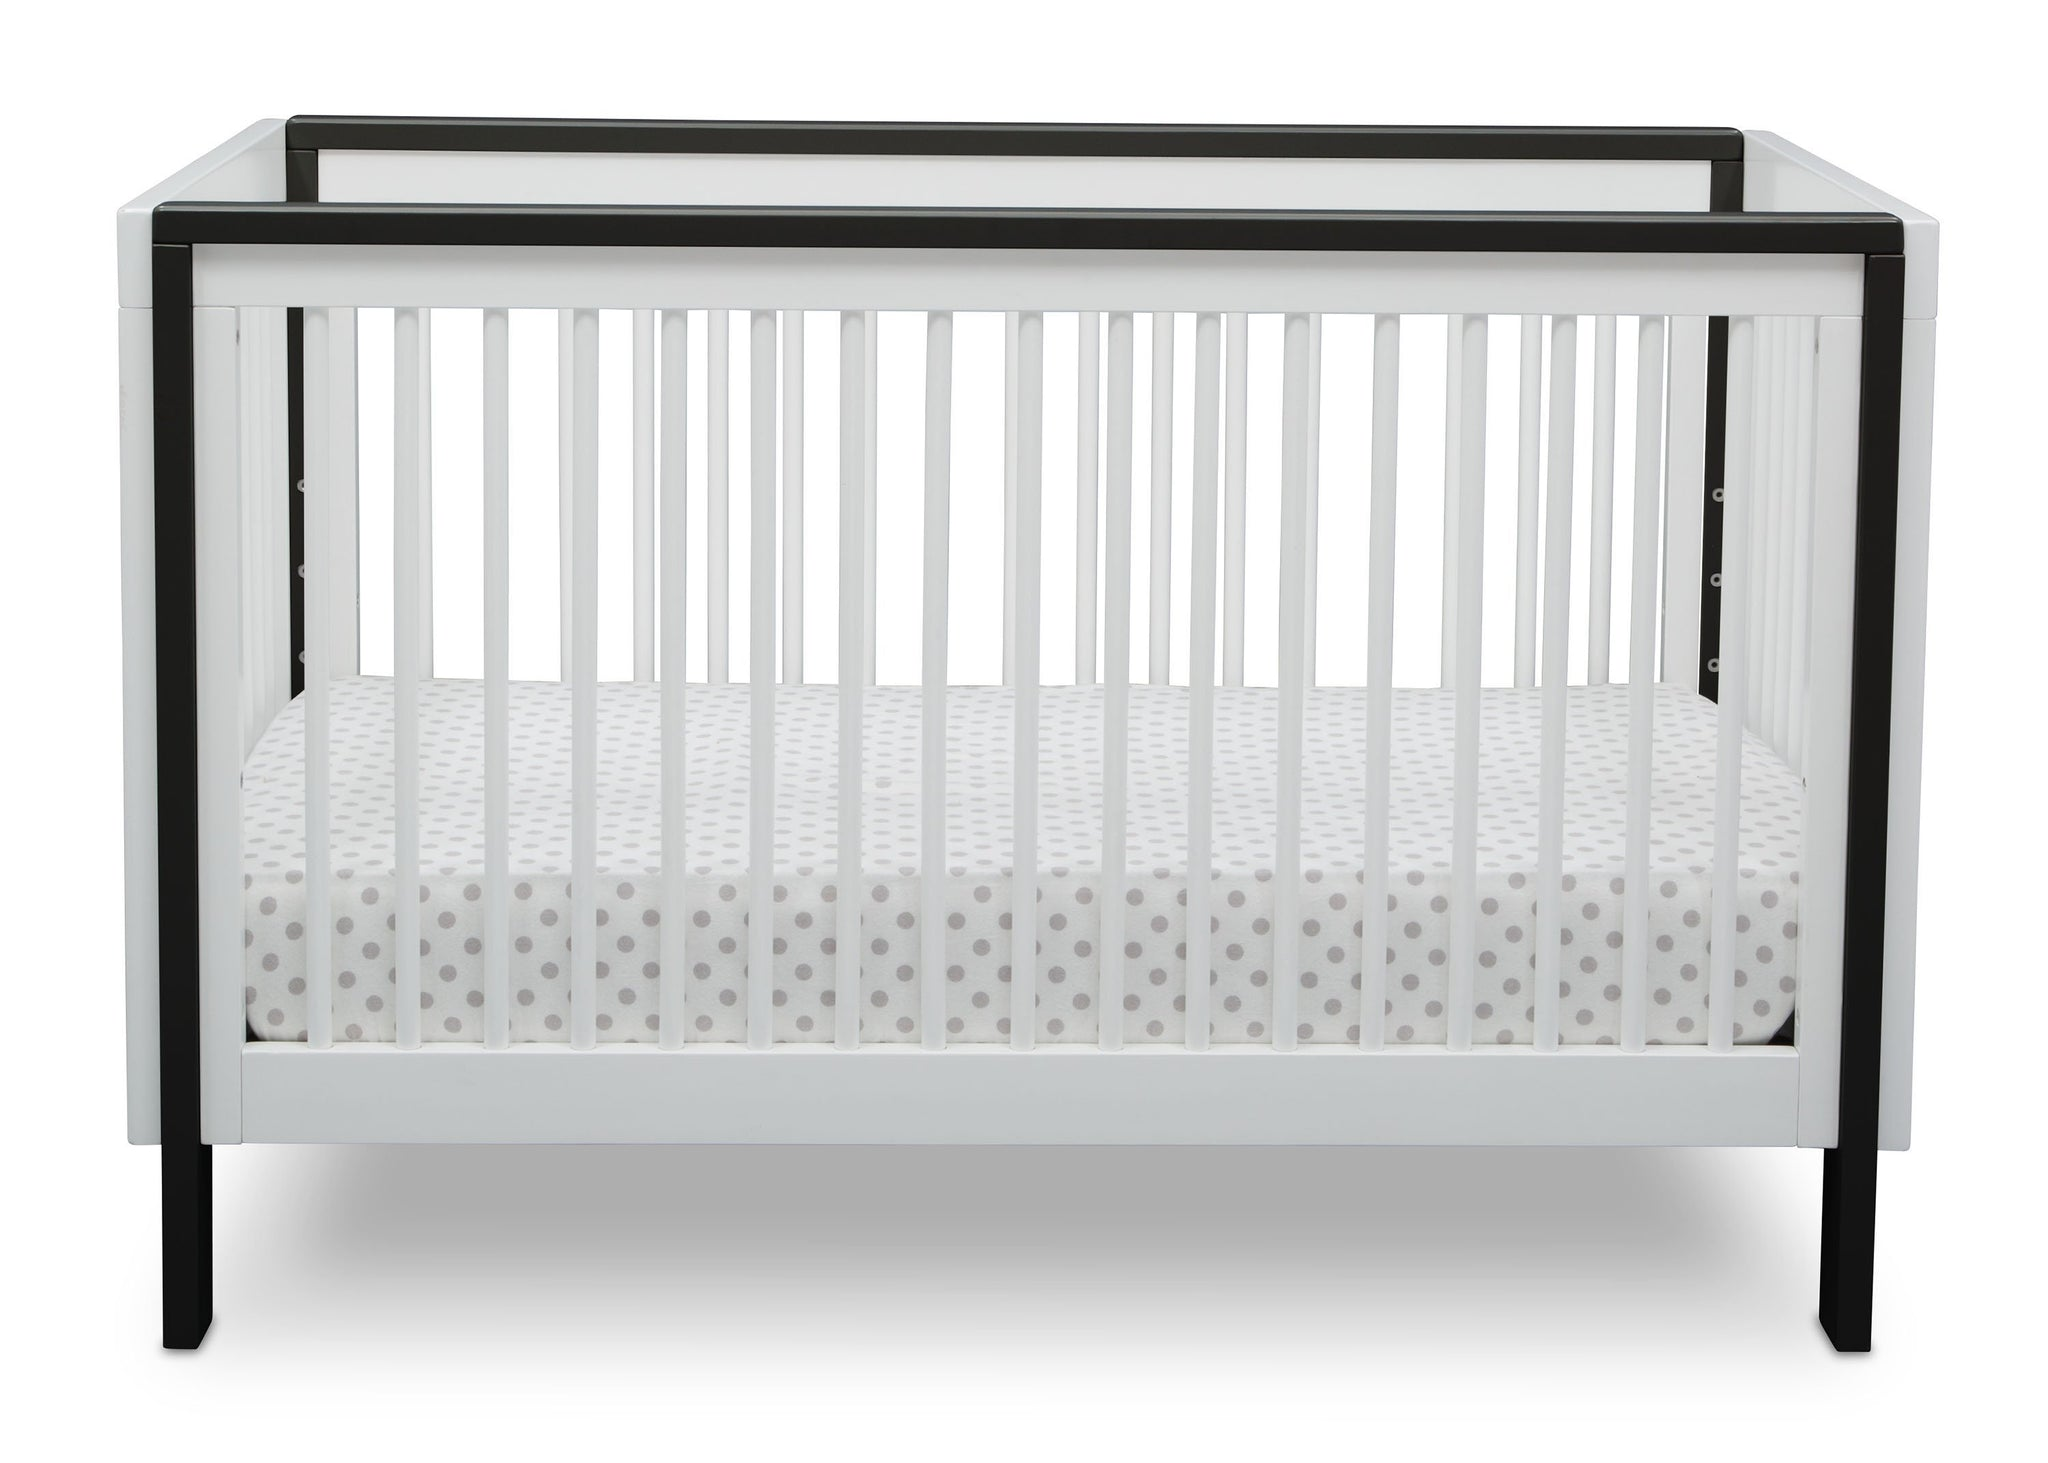 Serta Fremont 3-in-1 Convertible Crib Bianca White with Ebony (149) Front b3b